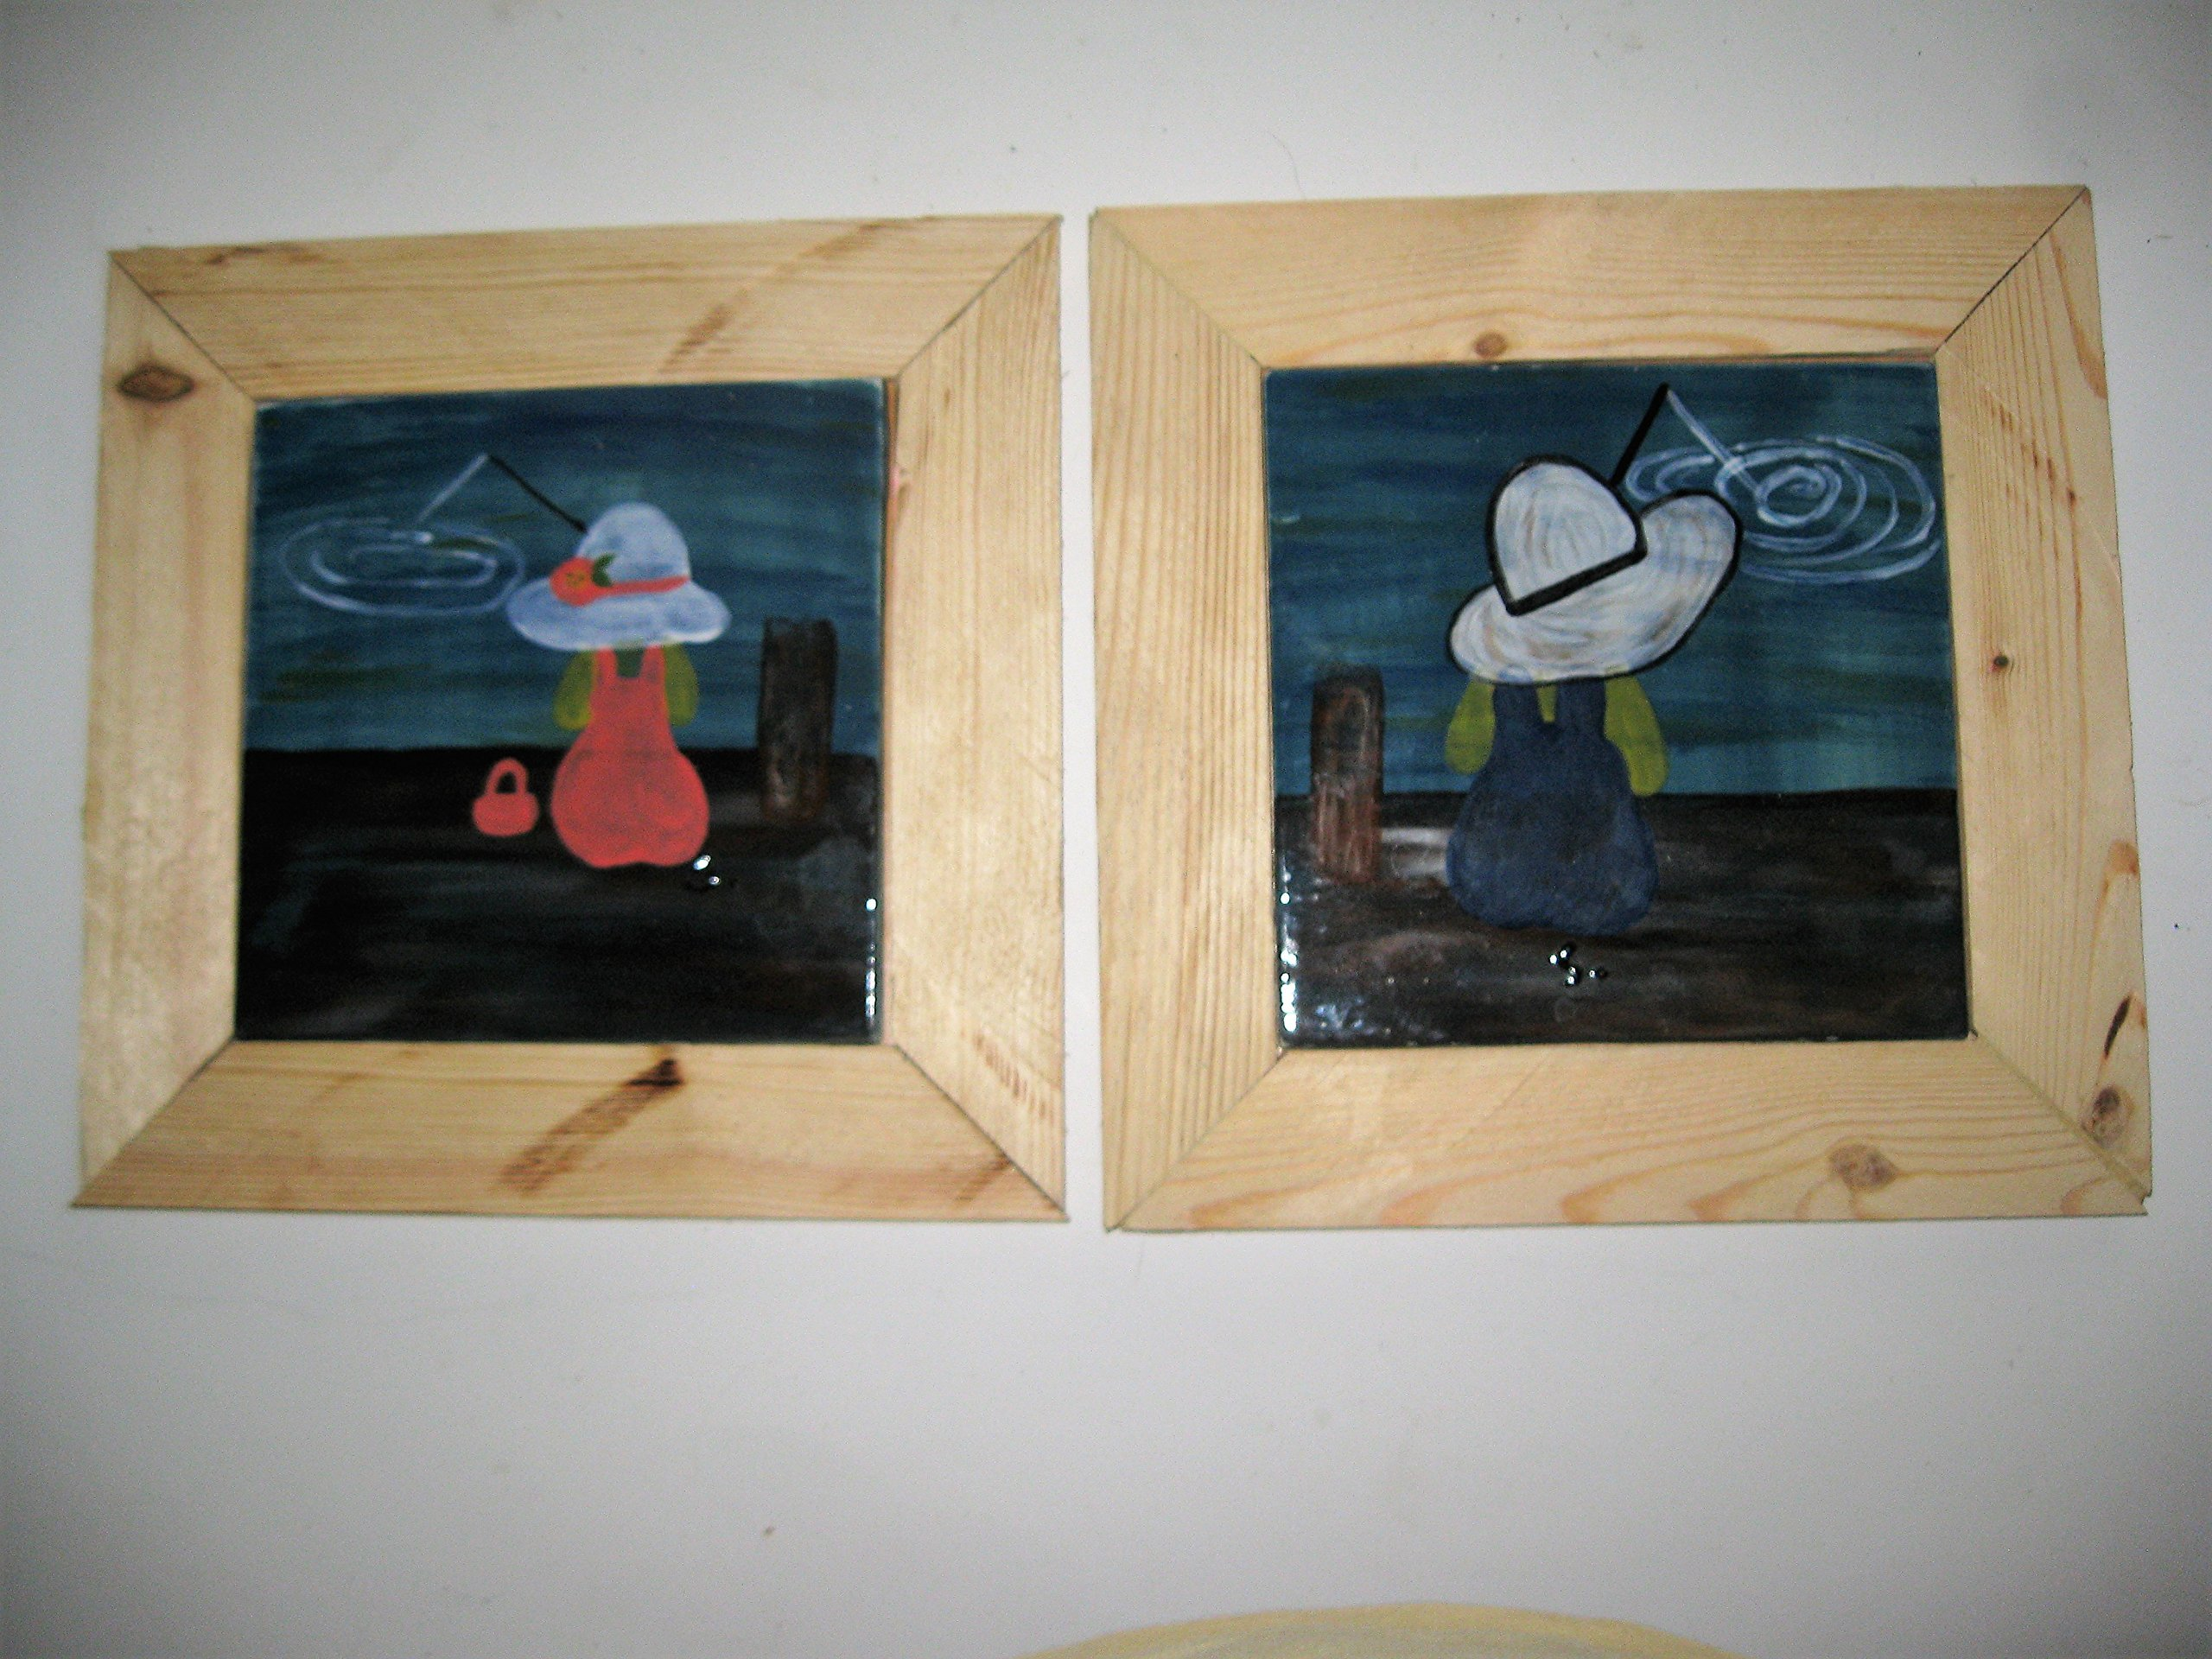 USA 2 hand painted pictures of children fishing on ceramic tiles and framed in reclaimed natural wood